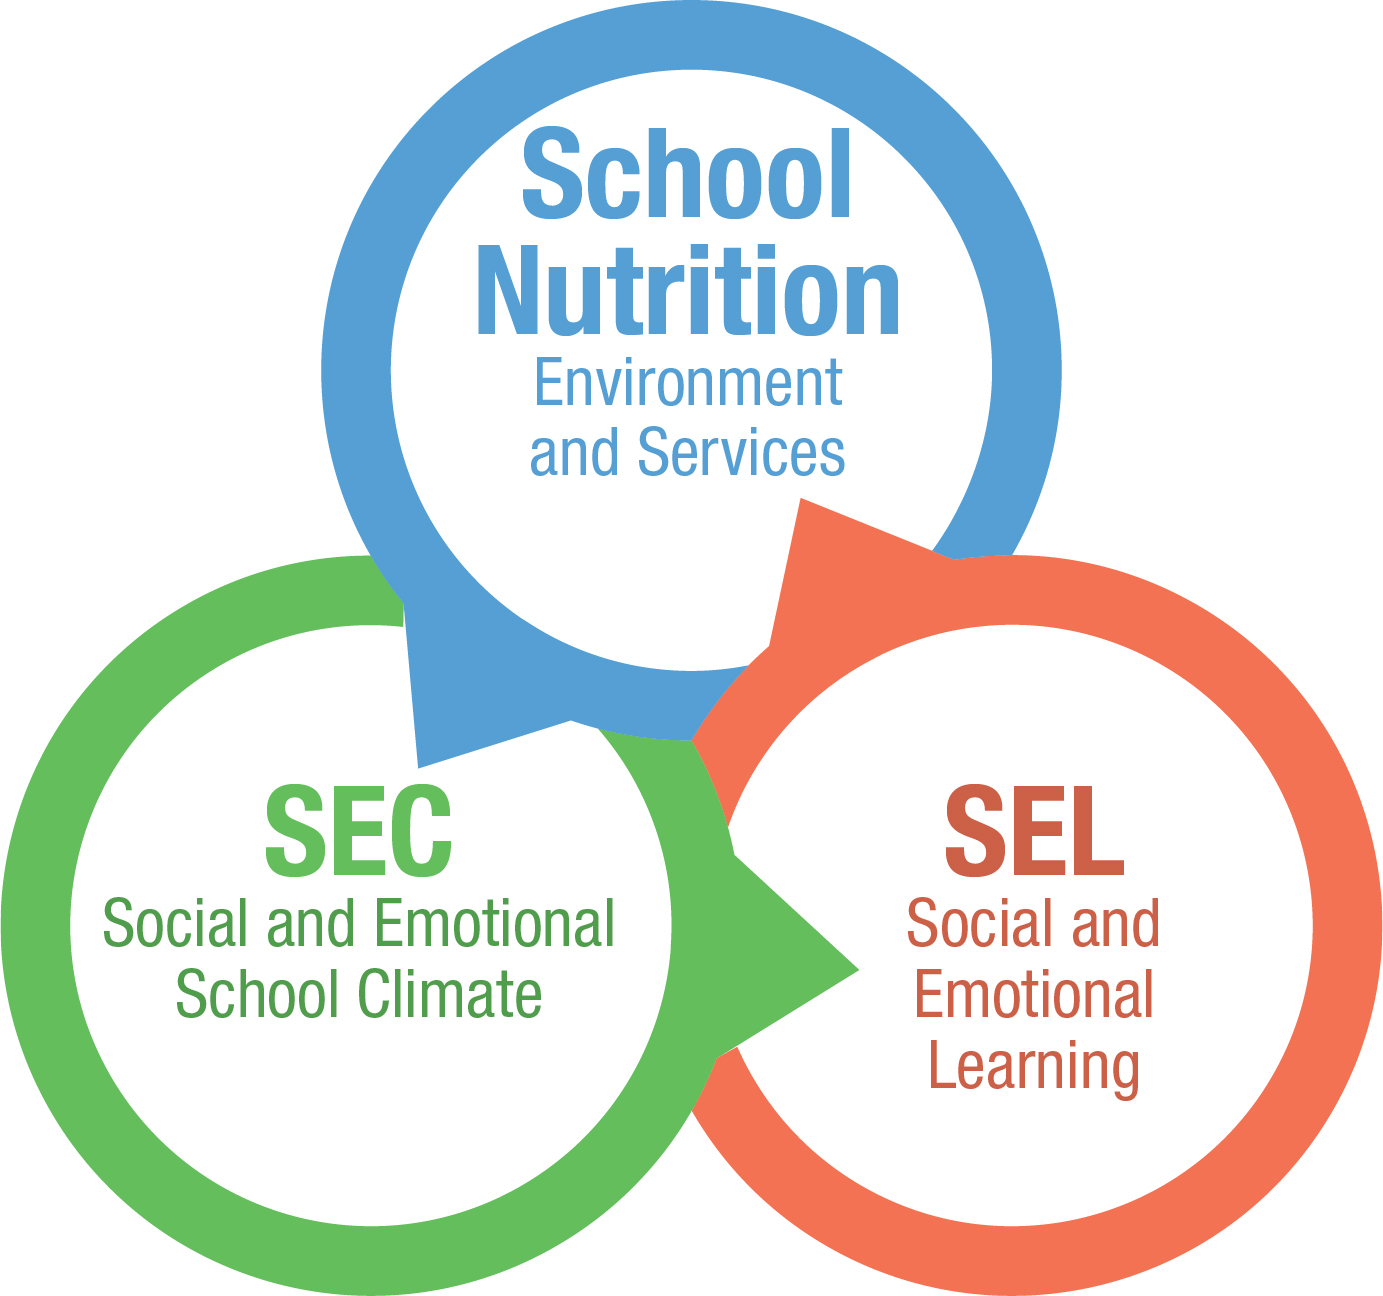 School Nutrition and the Social and Emotional Climate and Learning